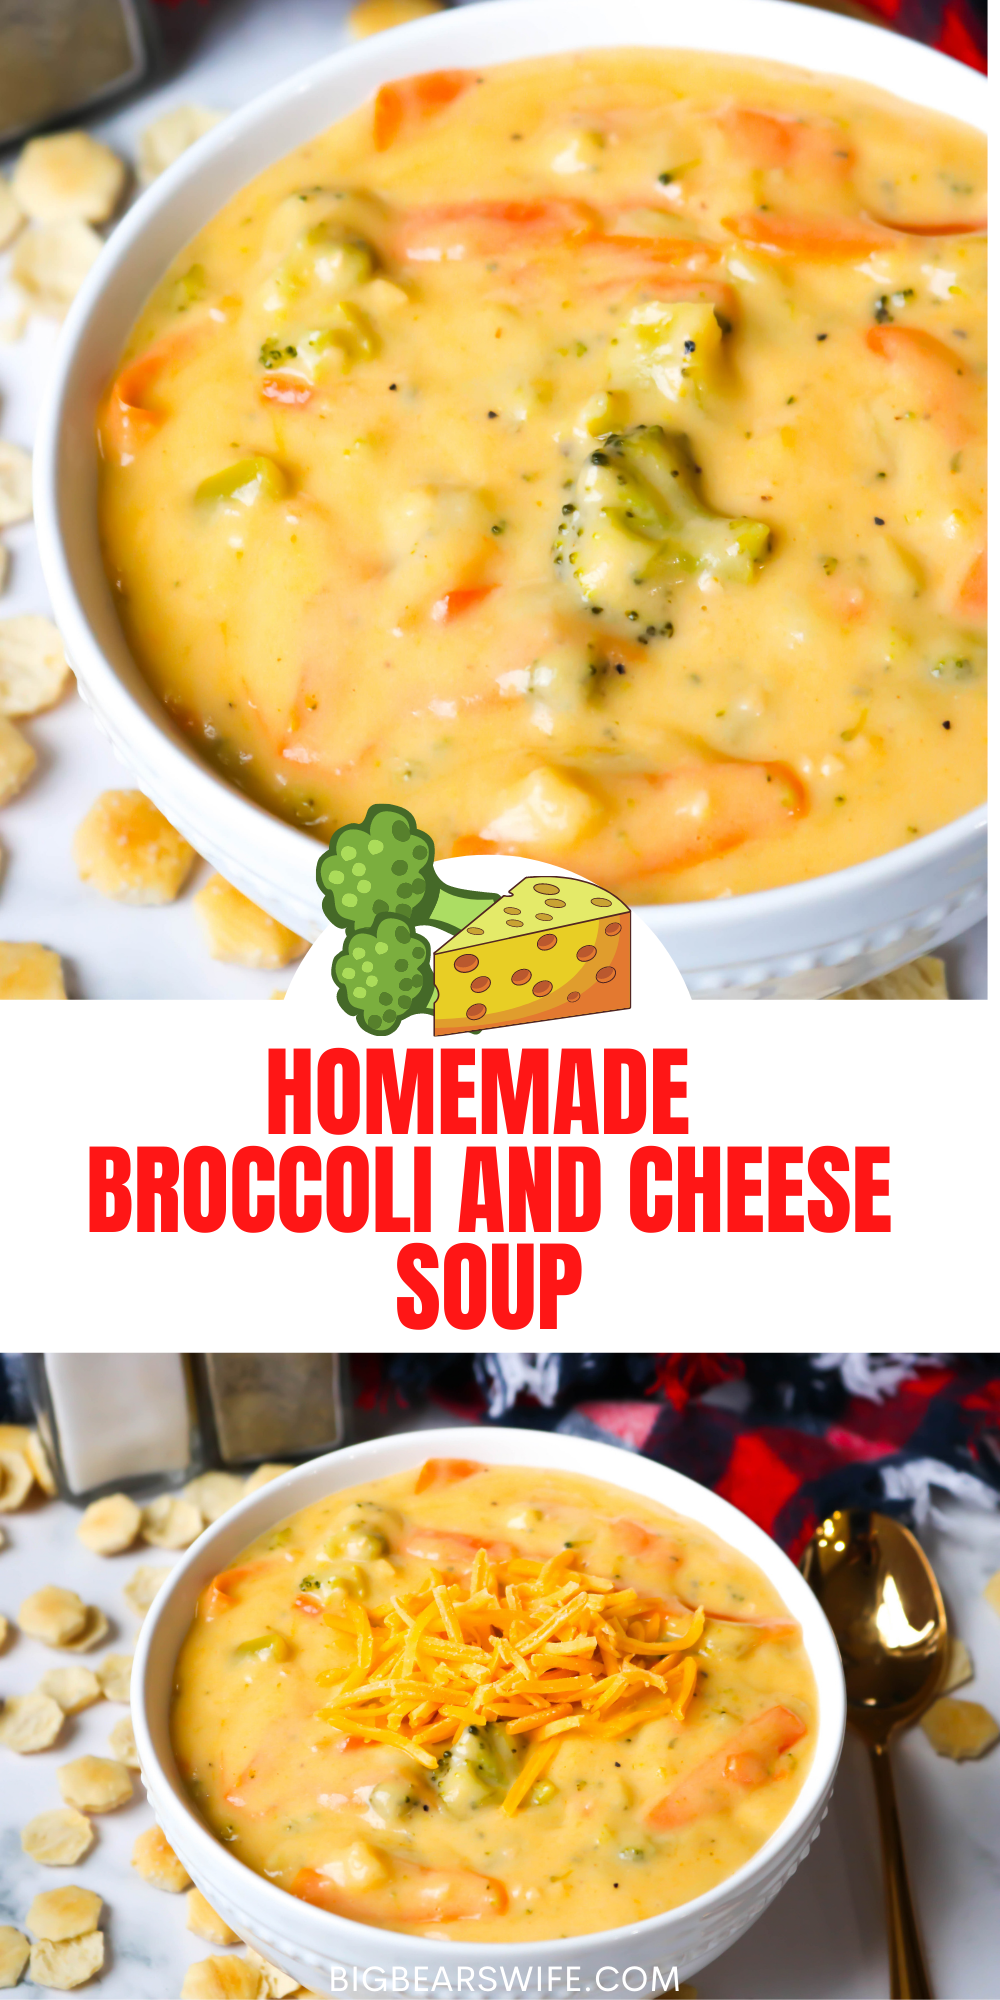 This Homemade Broccoli and Cheese Soup that is packed with broccoli, carrots, garlic and cheese is one of the best broccoli cheese soups I've made at home! It is so easy and so good! via @bigbearswife